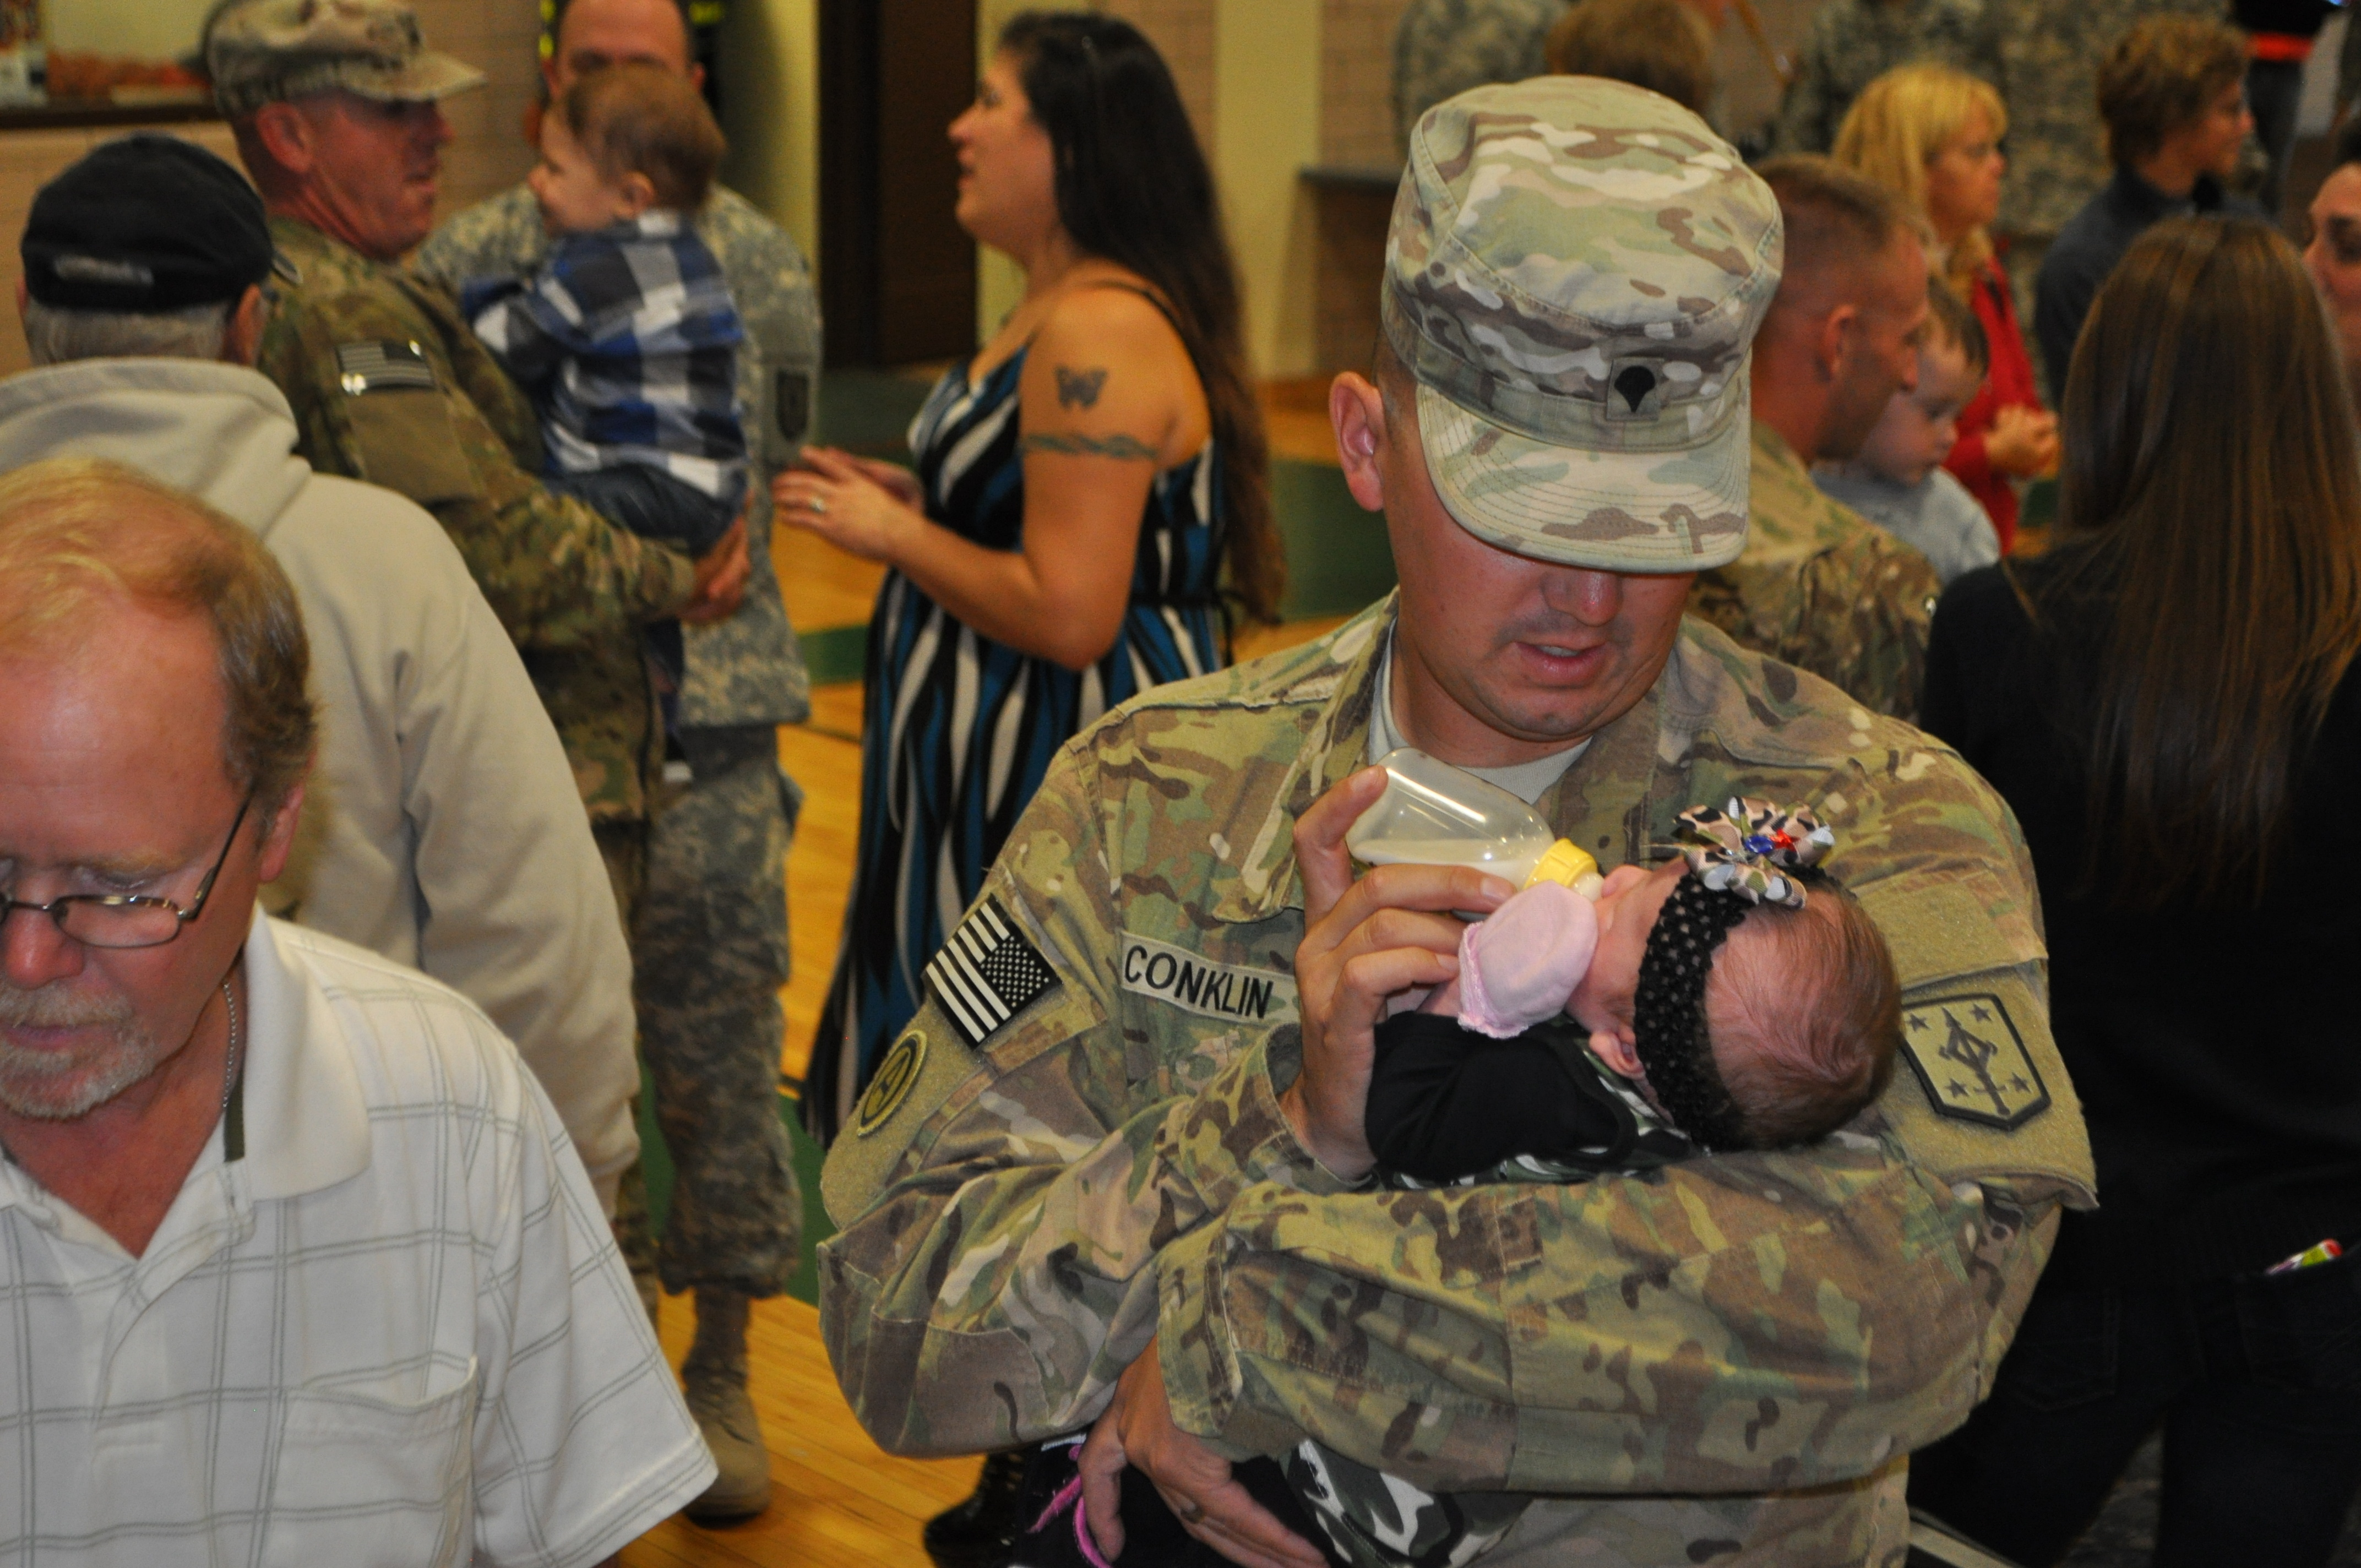 100% free online dating in fort leonard wood Review of living at ft leonard wood army post in missouri ≡ menu  fort leonard wood base location: south central missouri  theater with free movies on the .